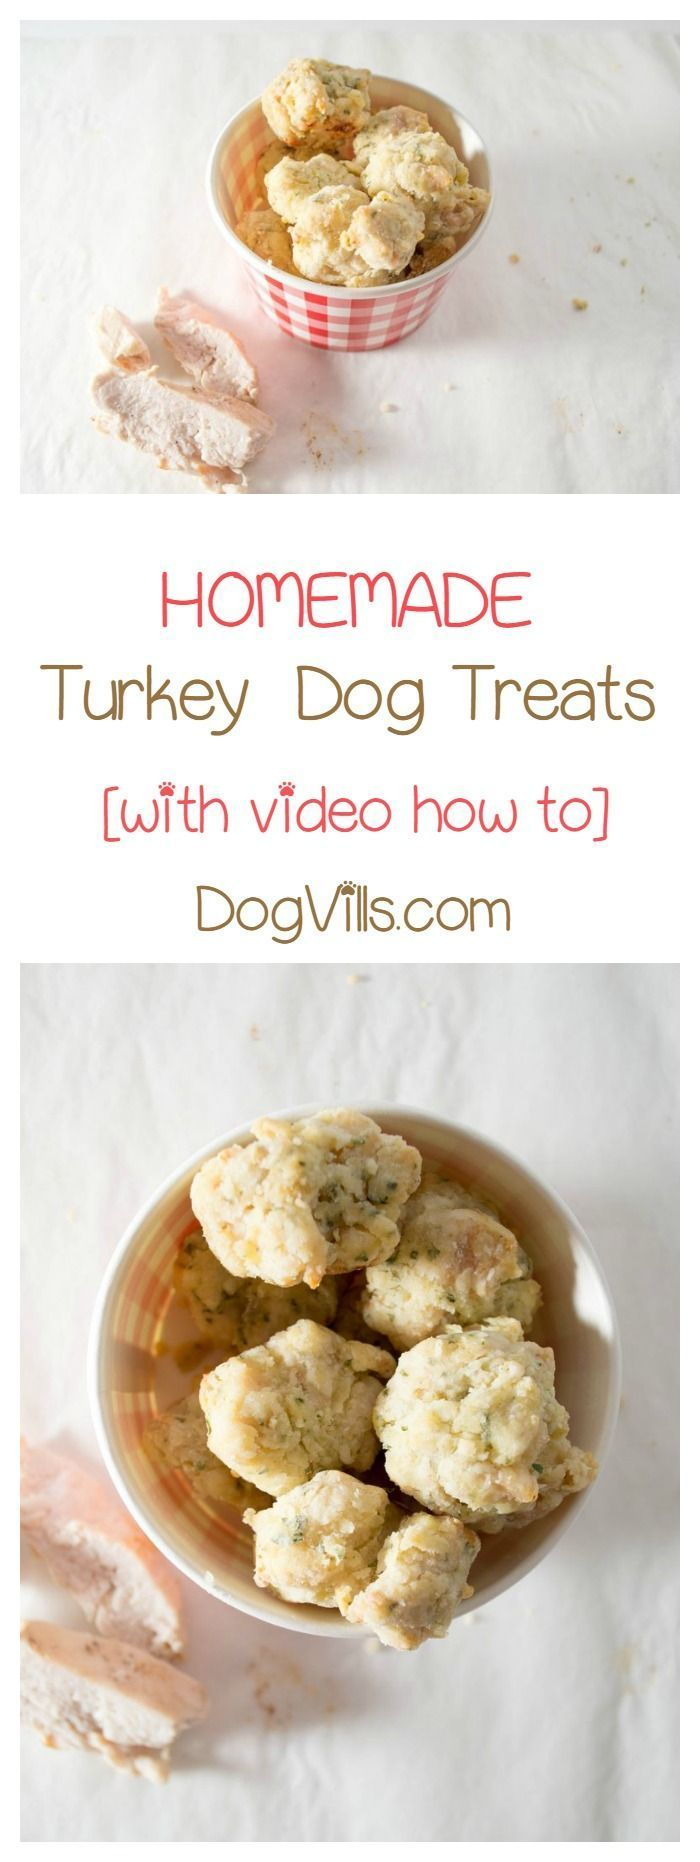 Looking for fun Thanksgiving food for dogs? Check out this yummy turkey homemade dog treat!